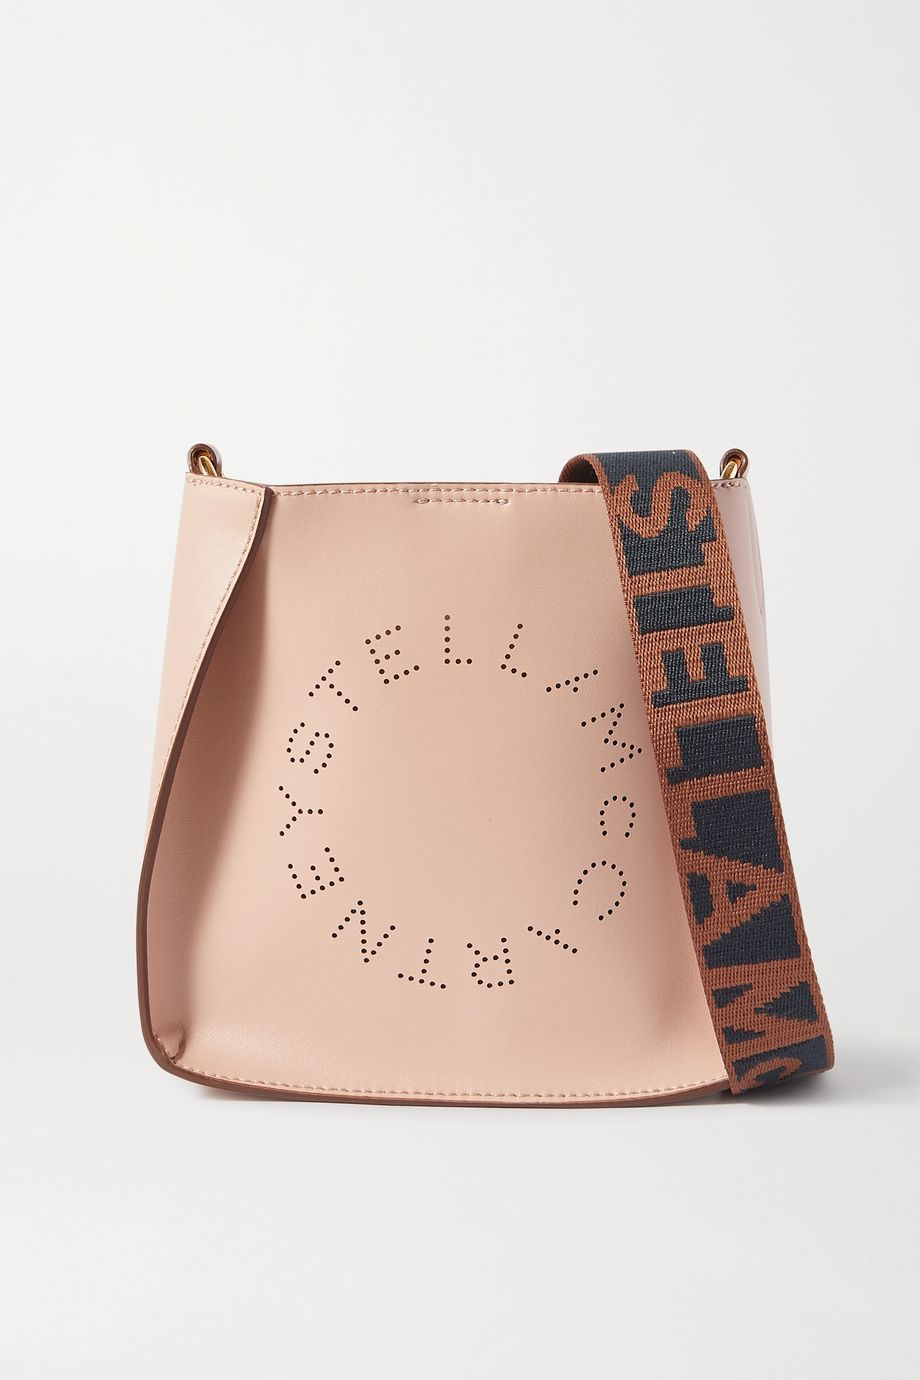 Stella McCartney Small perforated vegetarian leather shoulder bag